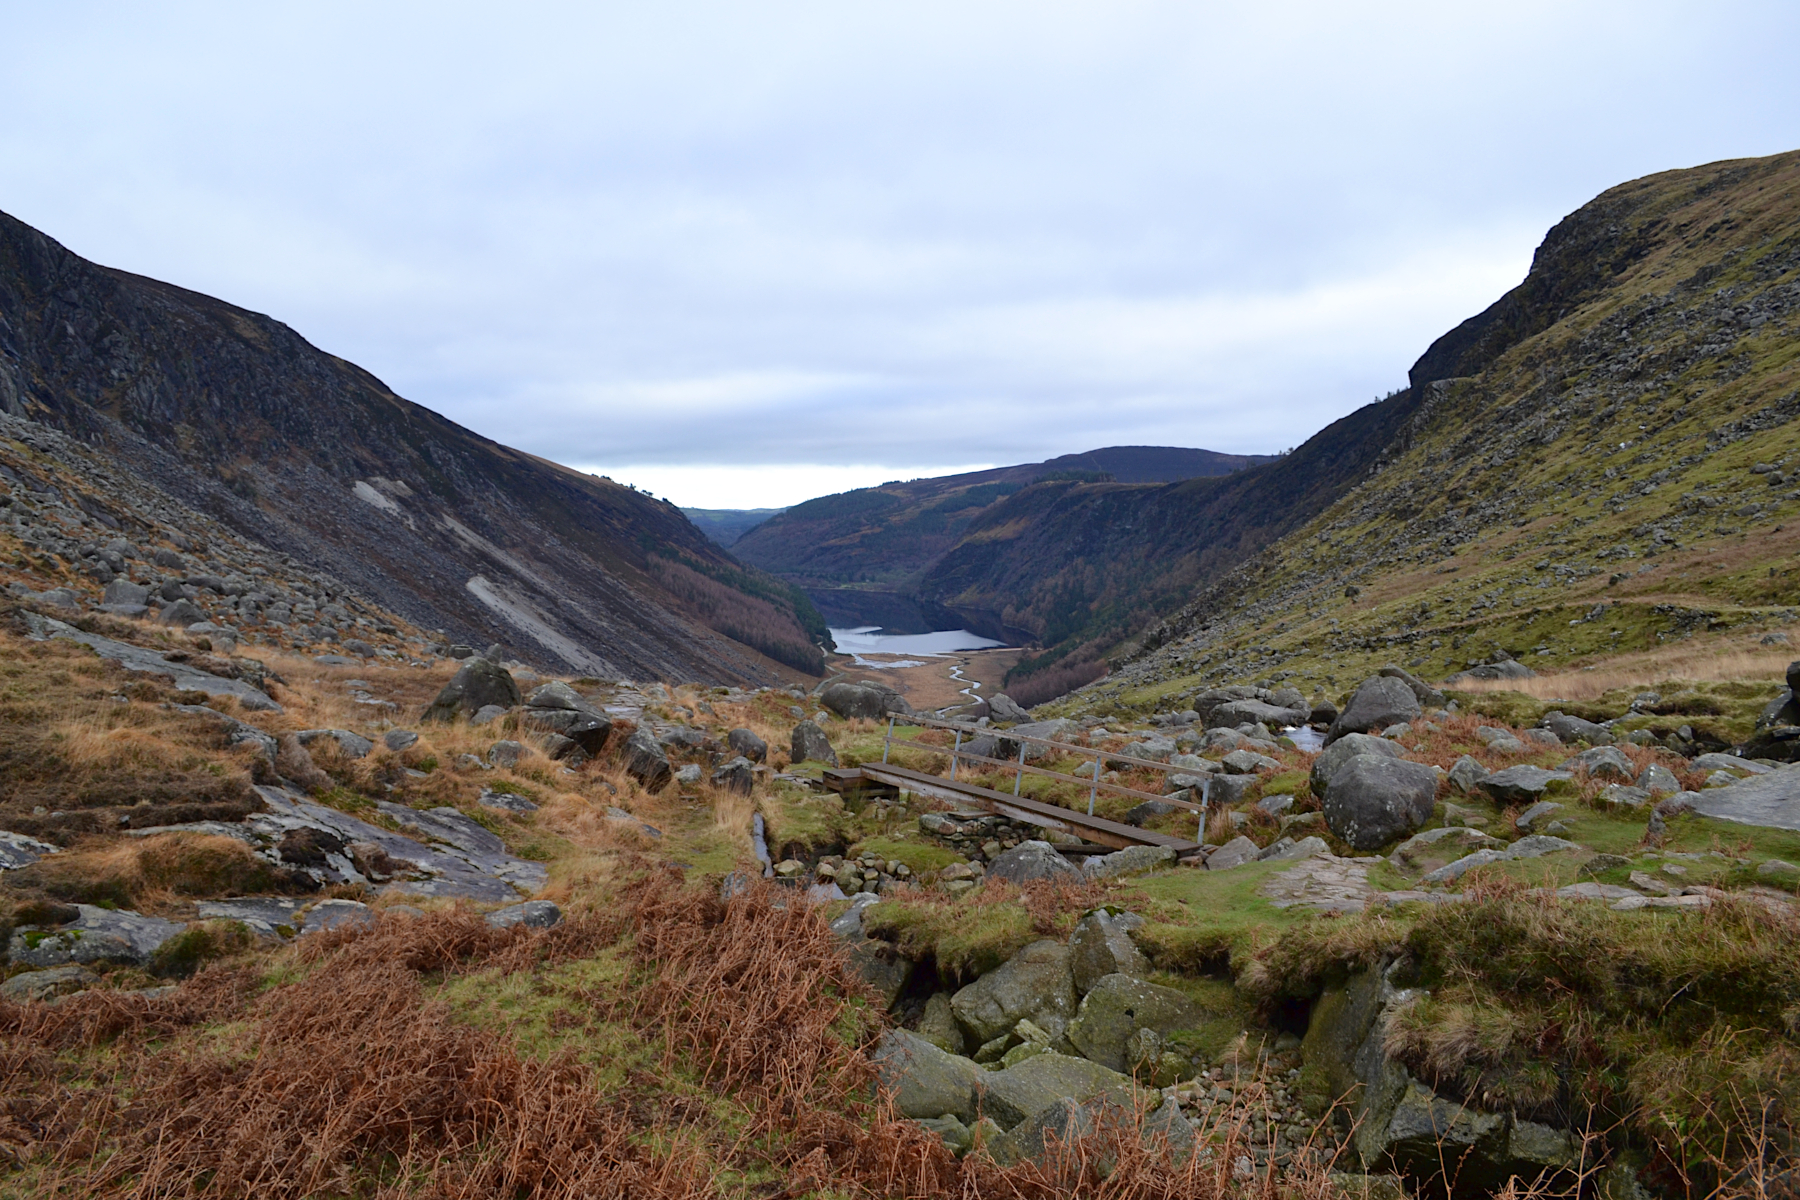 Upperlake de Glendalough, randonnée au parc national de Wicklow, trail, panorama et paysage